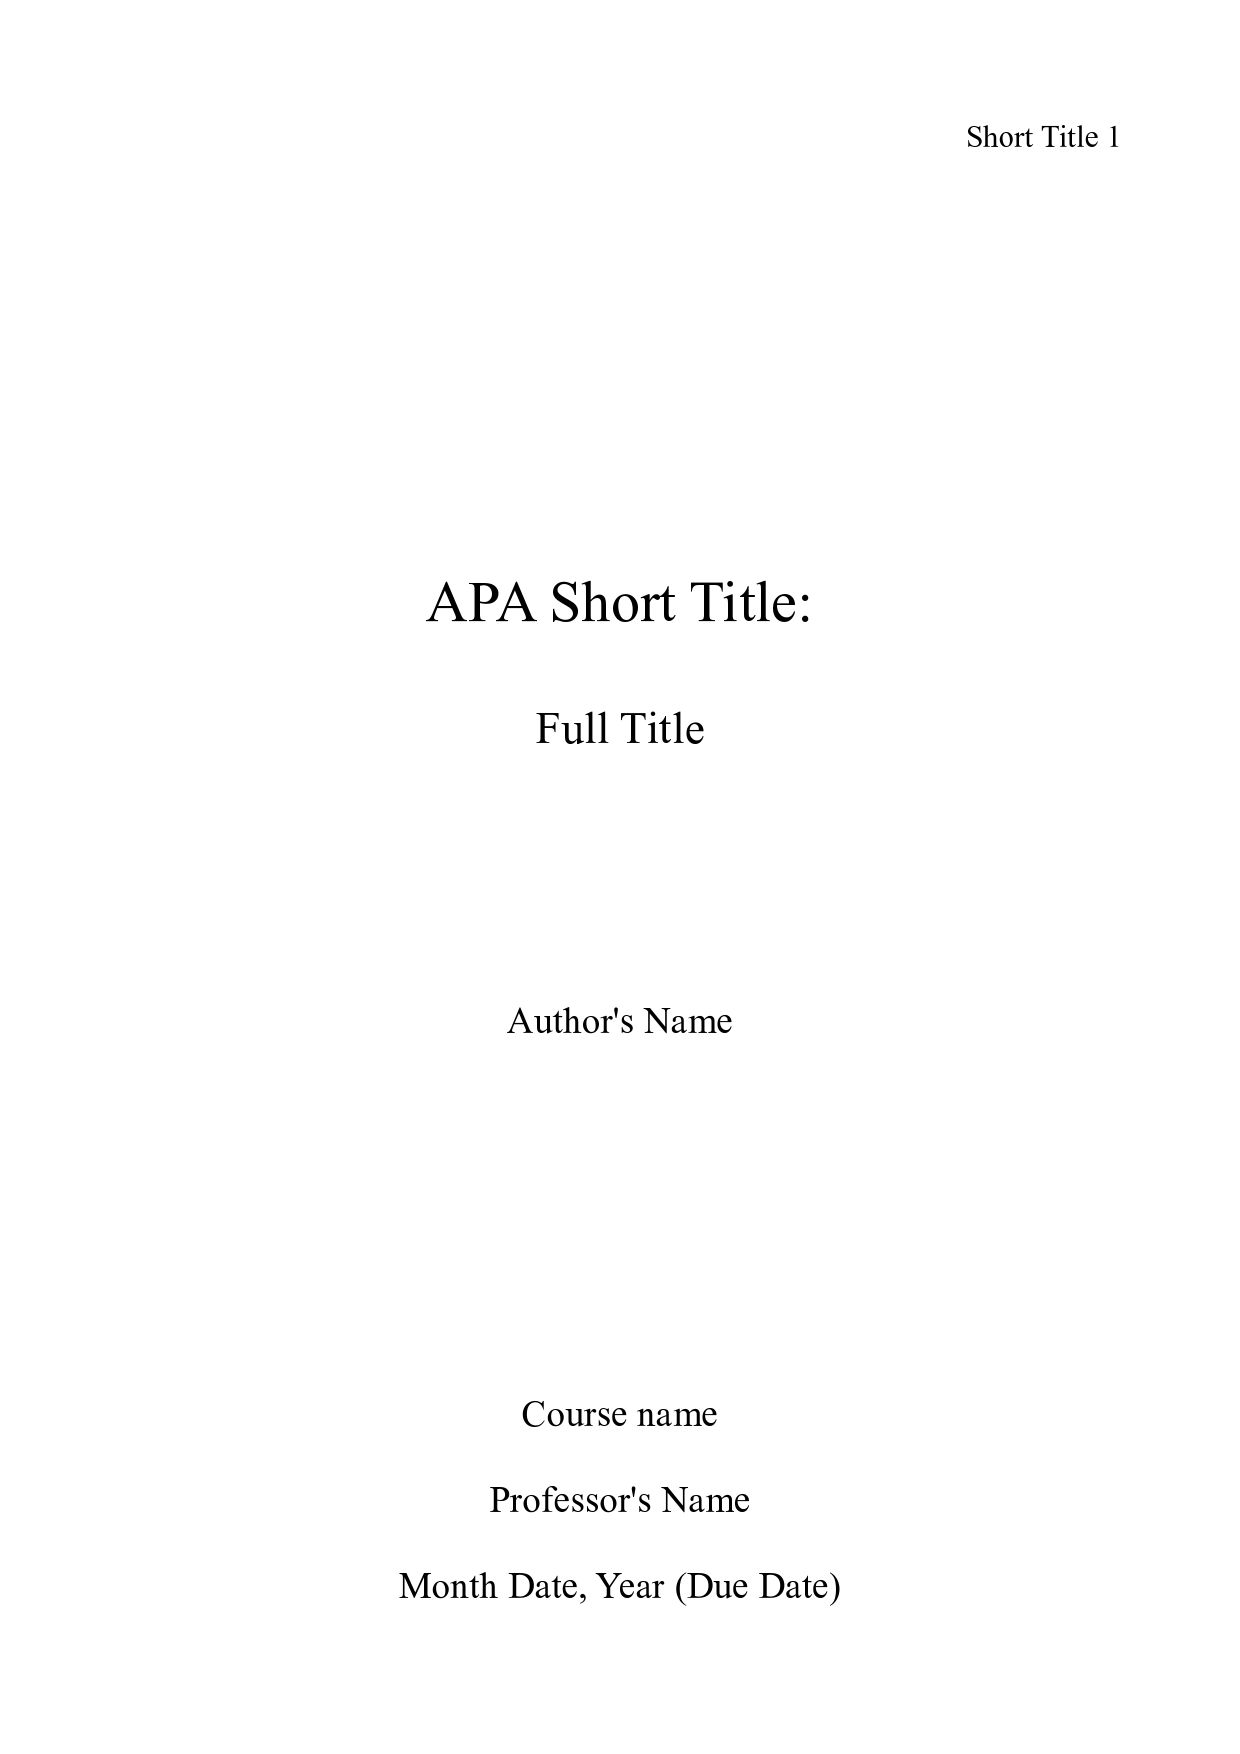 003 Research Paper Cover Page Apa Excellent Reference Format Sample Full